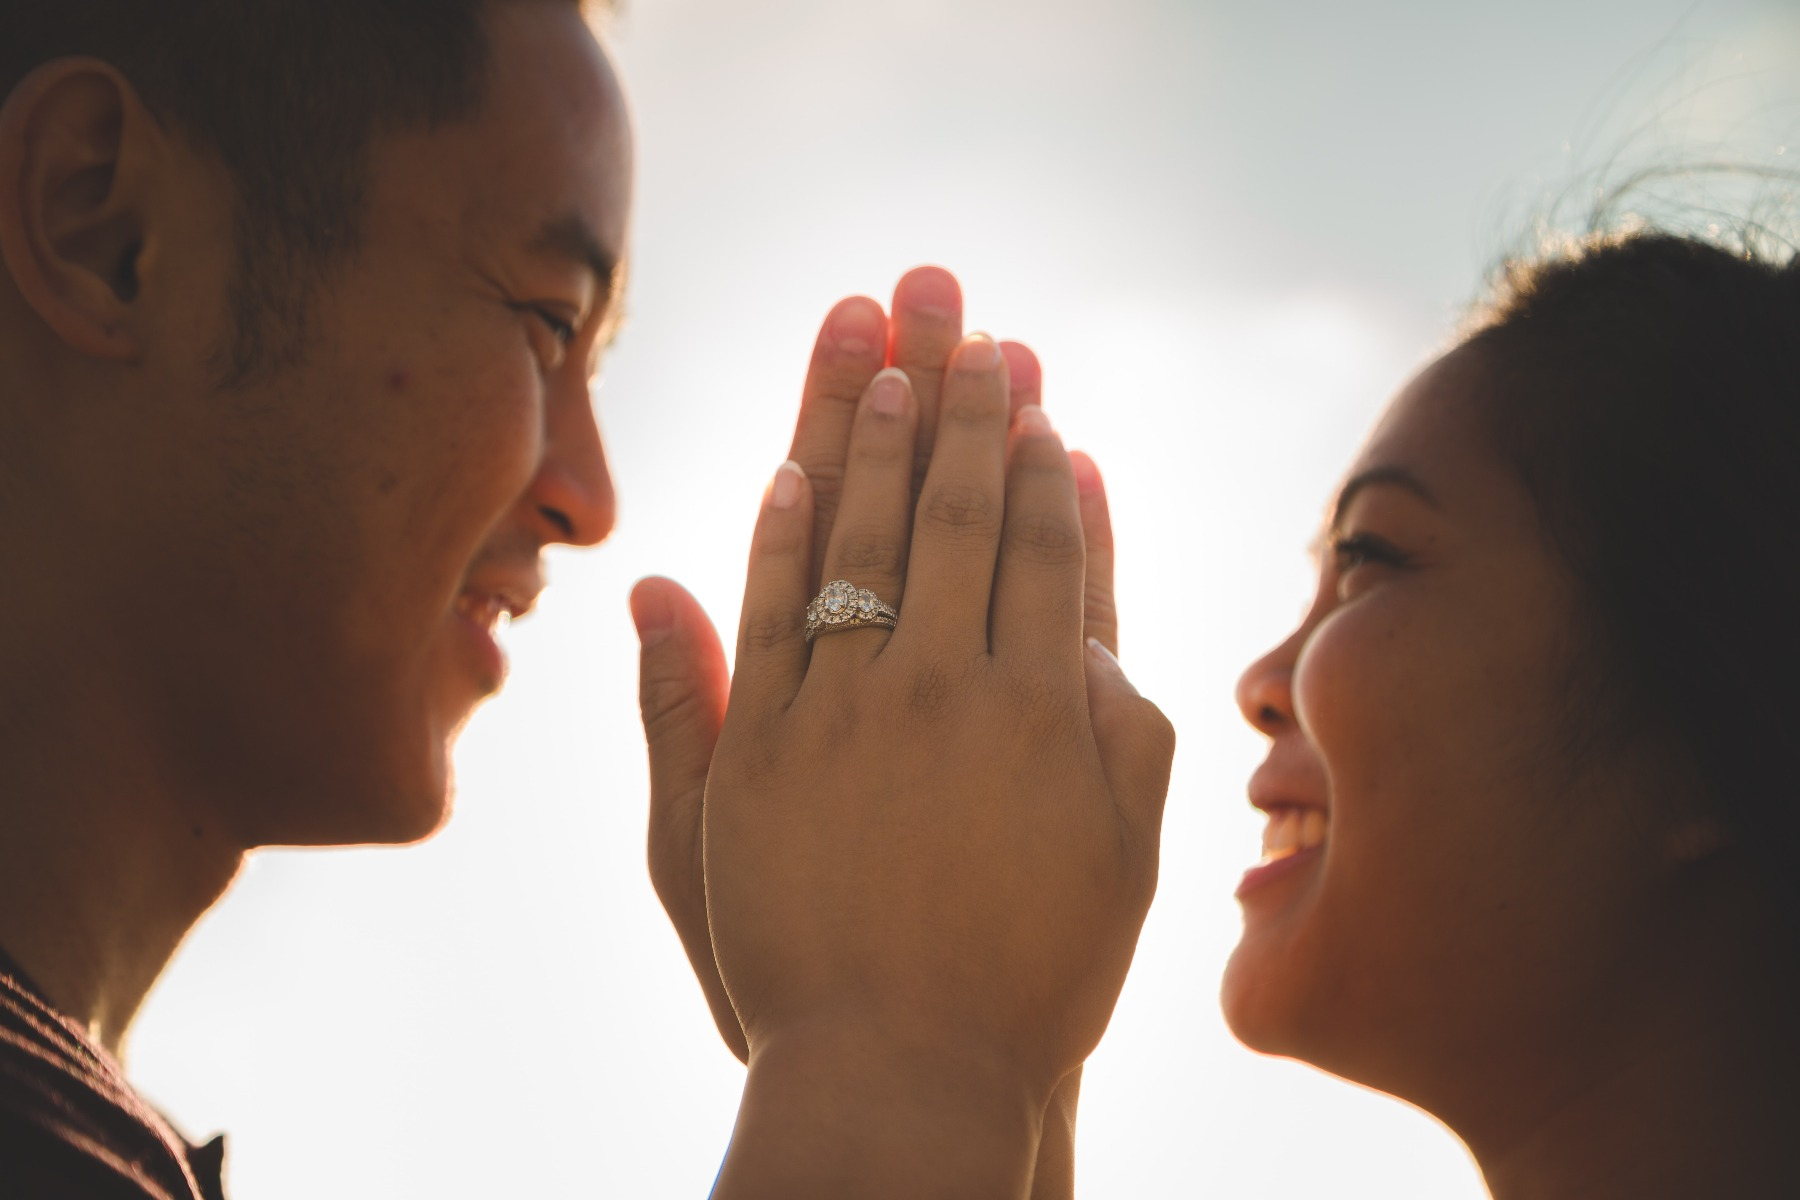 A man and a woman kissing each other while the woman holds her engagement ring up to the camera